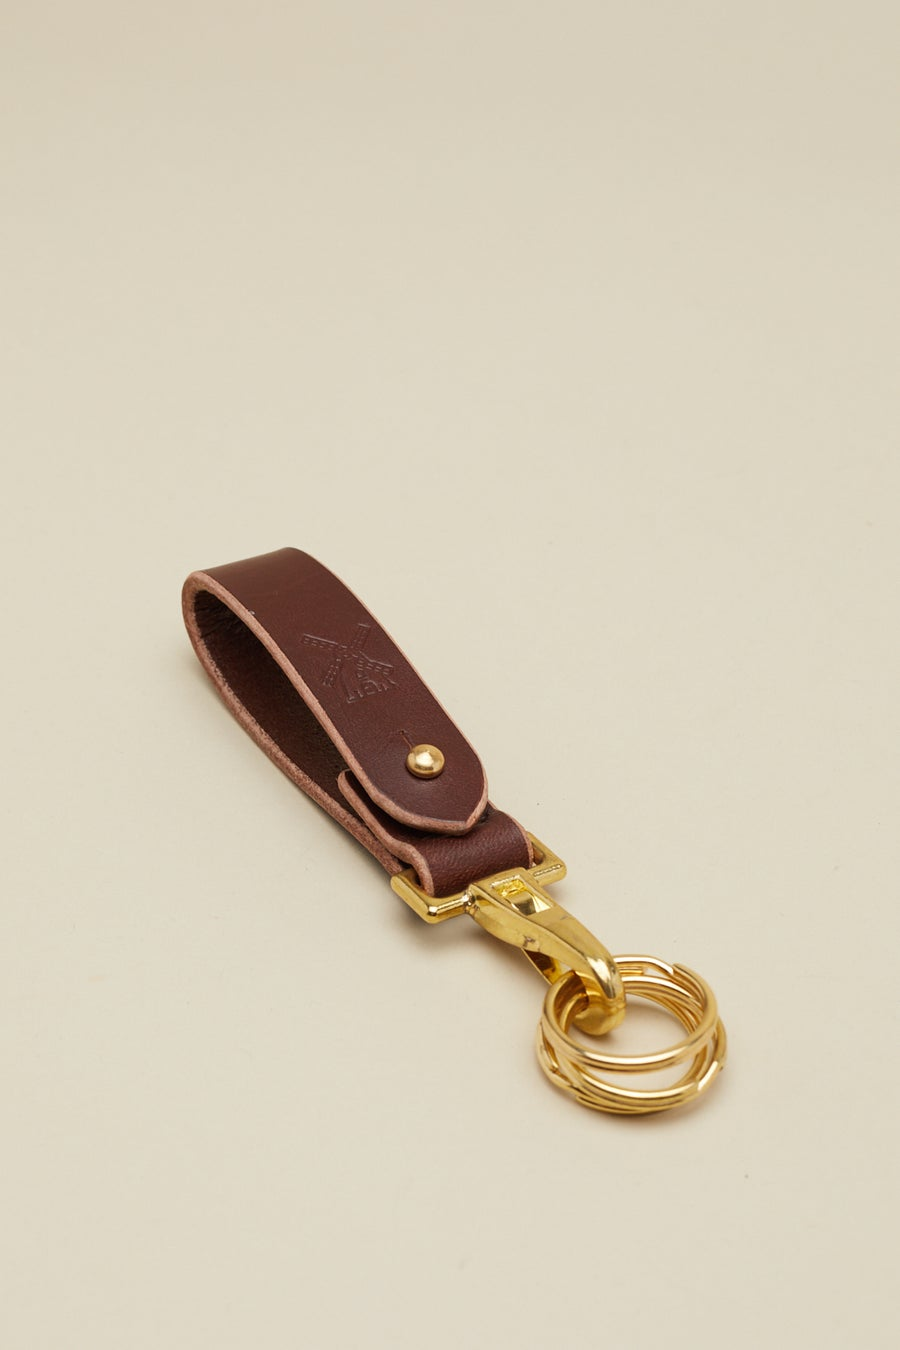 Image of Lanyard in Chestnut